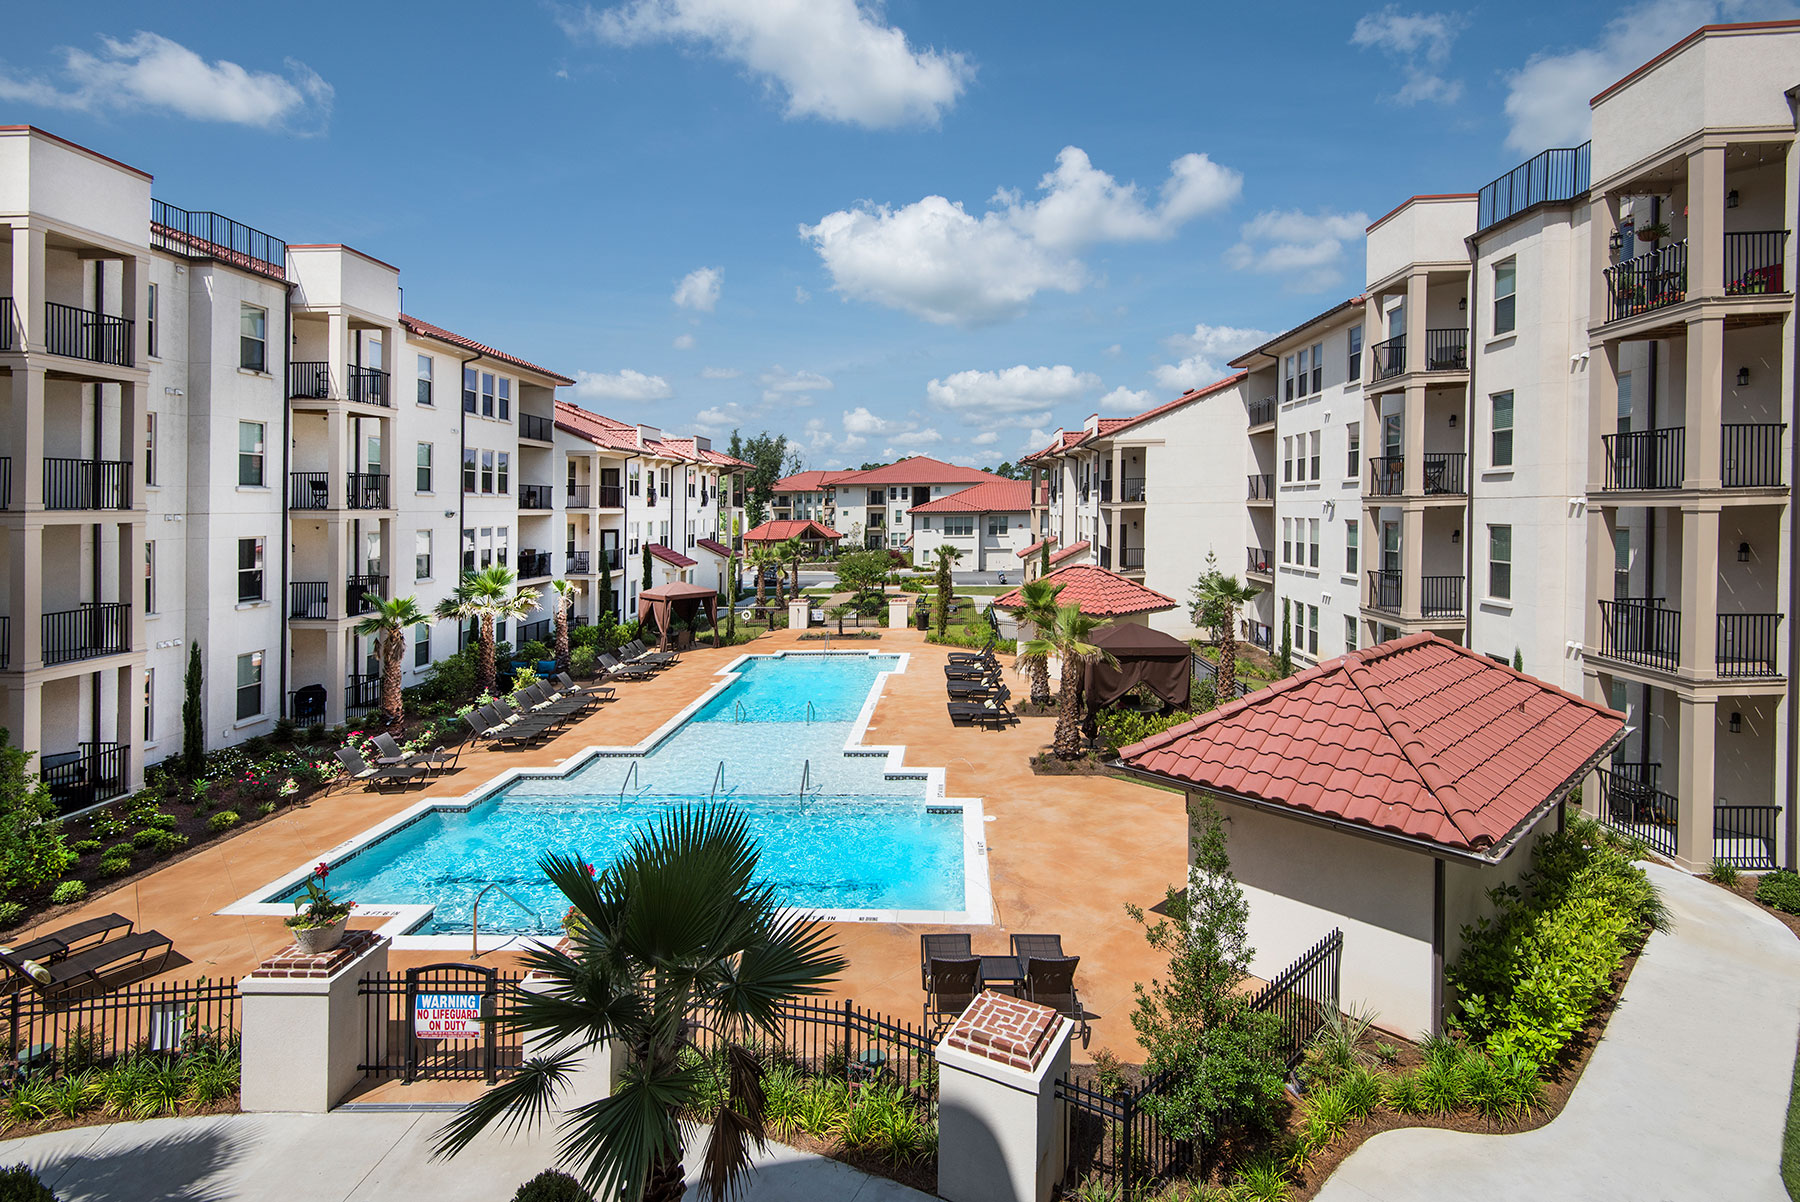 Two addison place apartments in pooler ga - One bedroom apartments pooler ga ...